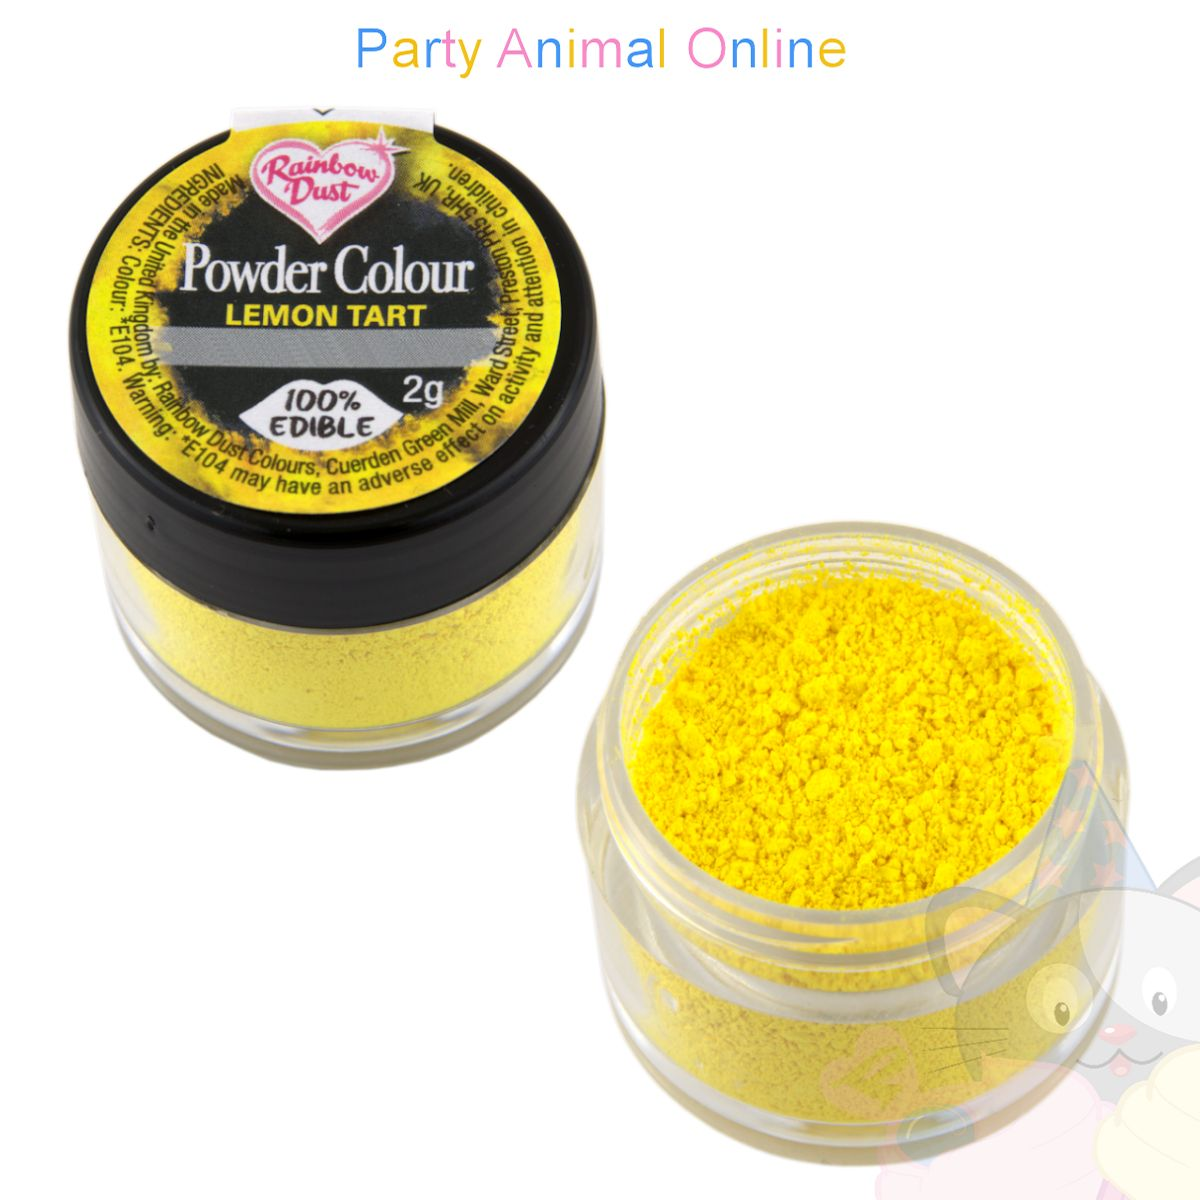 Rainbow Dust Plain and Simple Range - LEMON TART